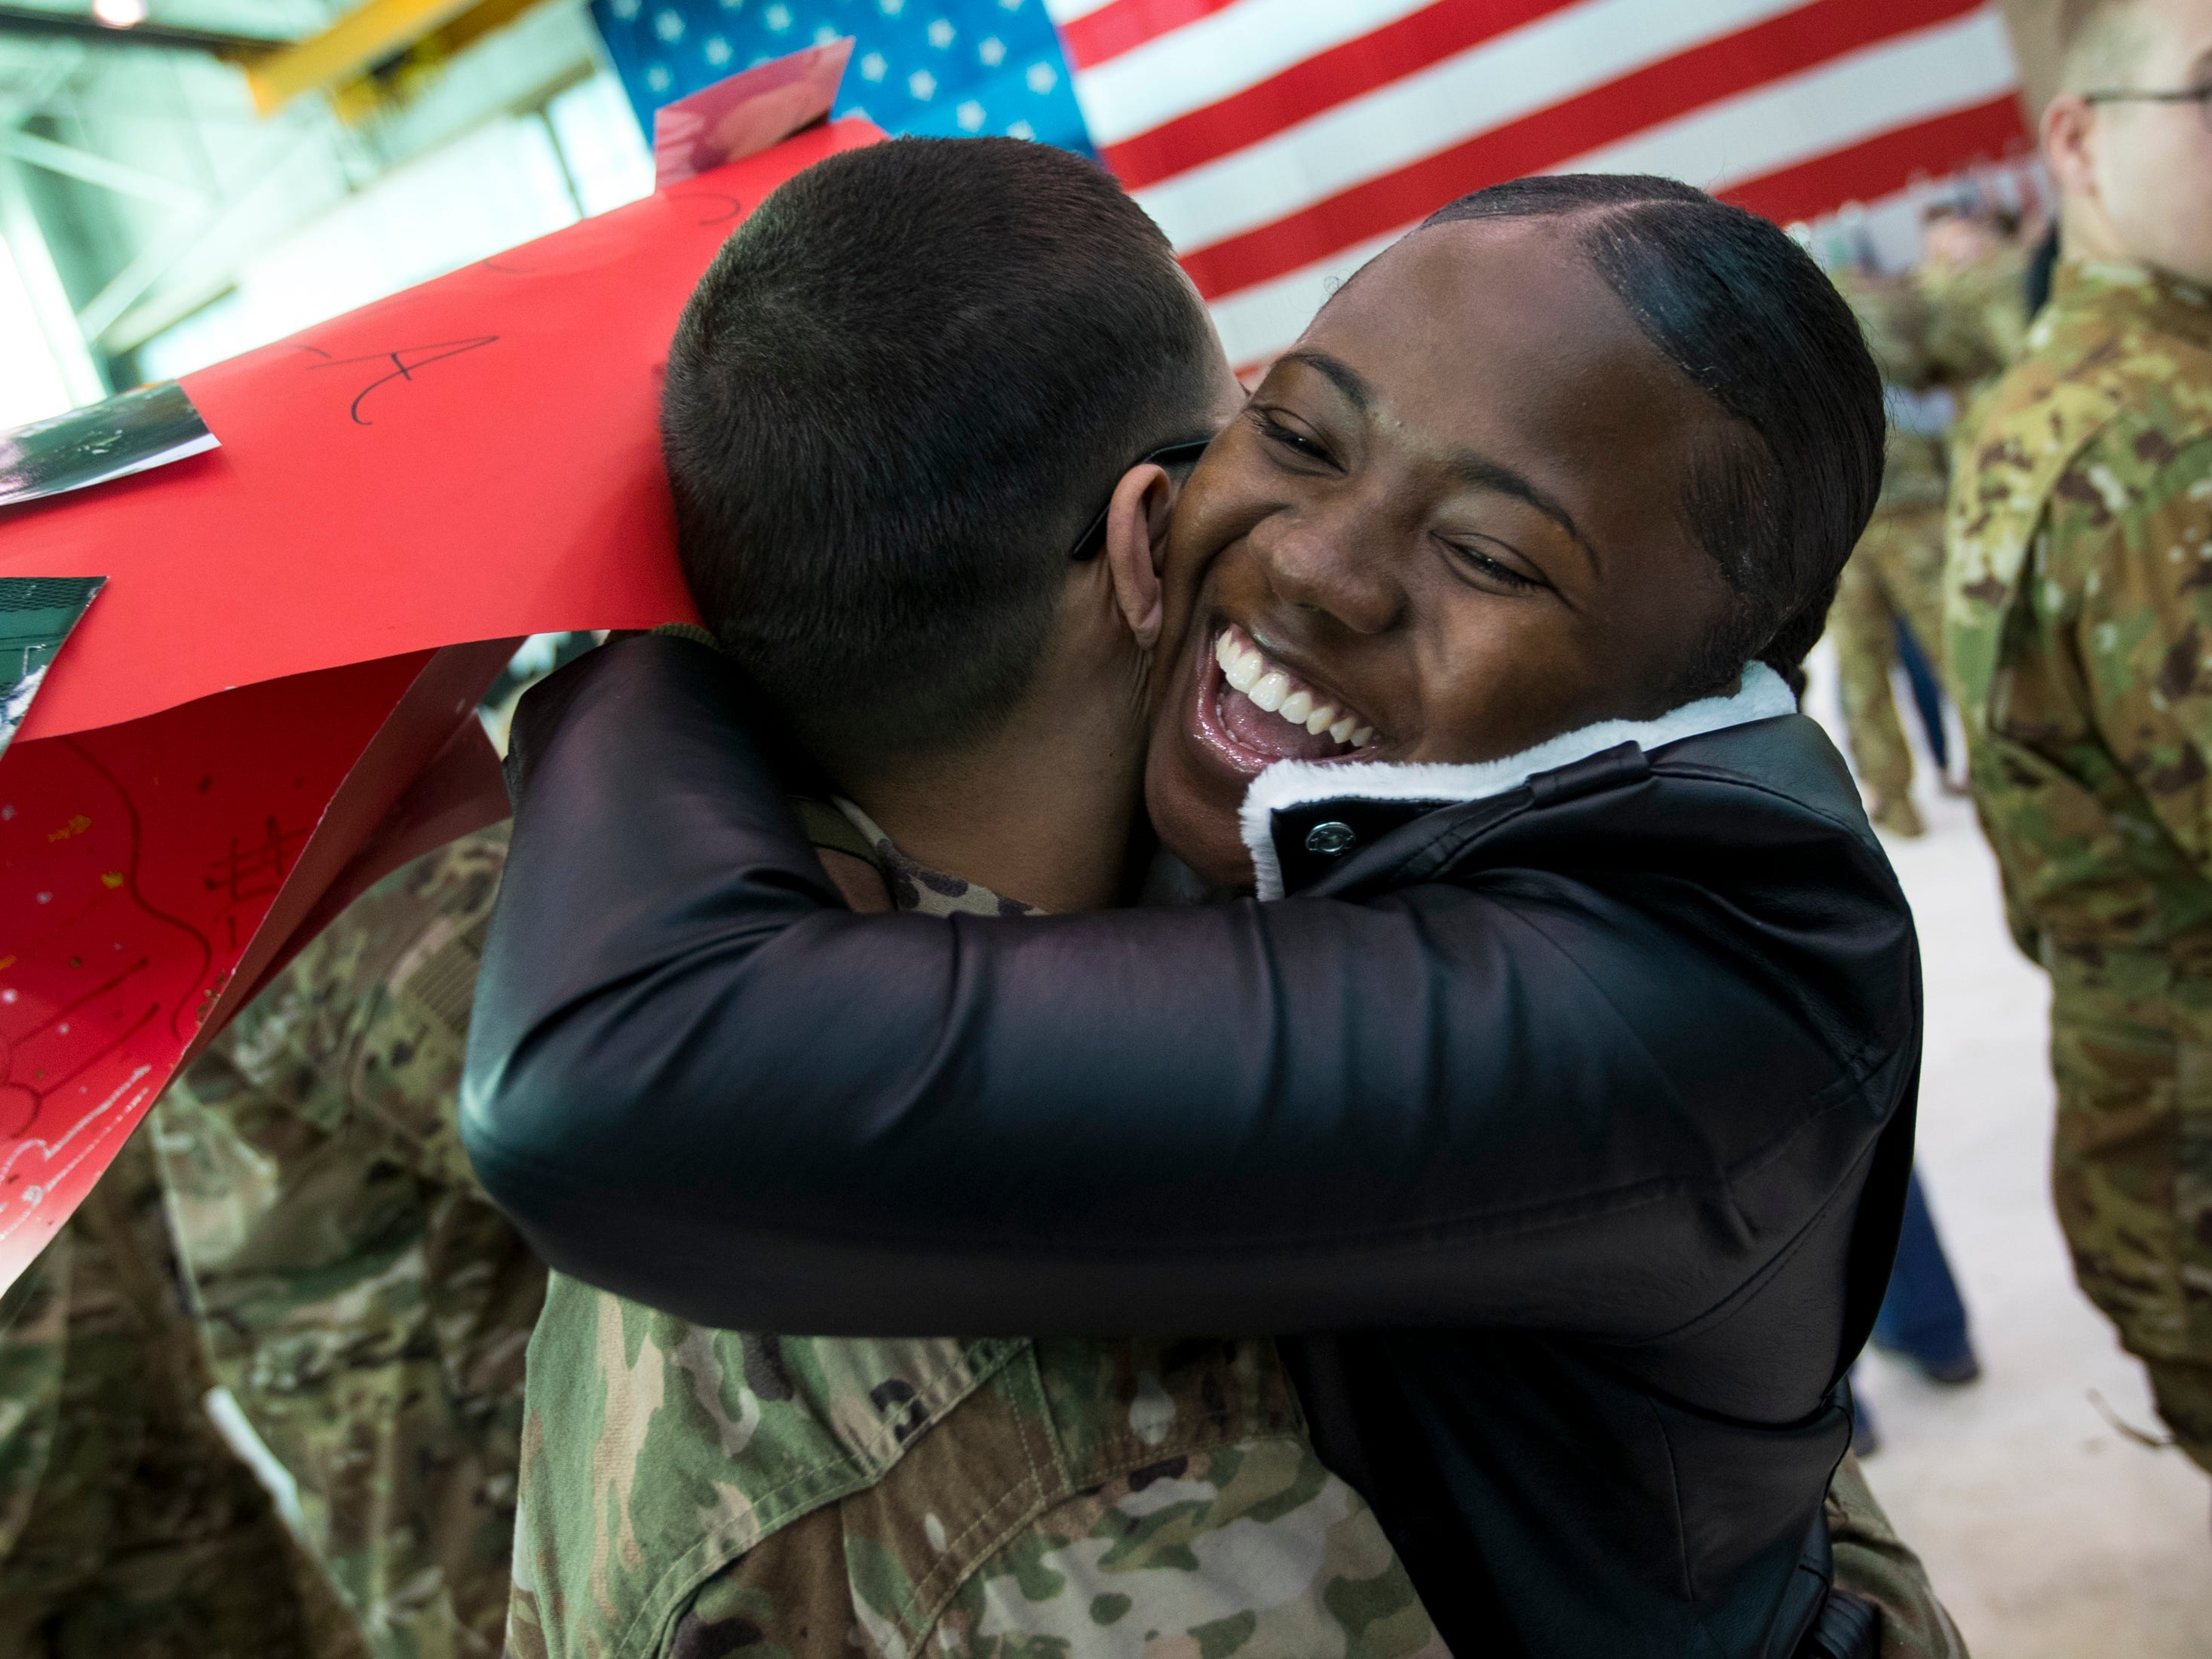 Abria Roberts embraces Spc. Marcus Davila during a homecoming ceremony for members of the 101st Combat Aviation Brigade and 101st Sustainment Brigade at Fort Campbell in Clarksville on Thursday, Feb. 21, 2019. The soldiers were returning from a nine-month deployment to Afghanistan.